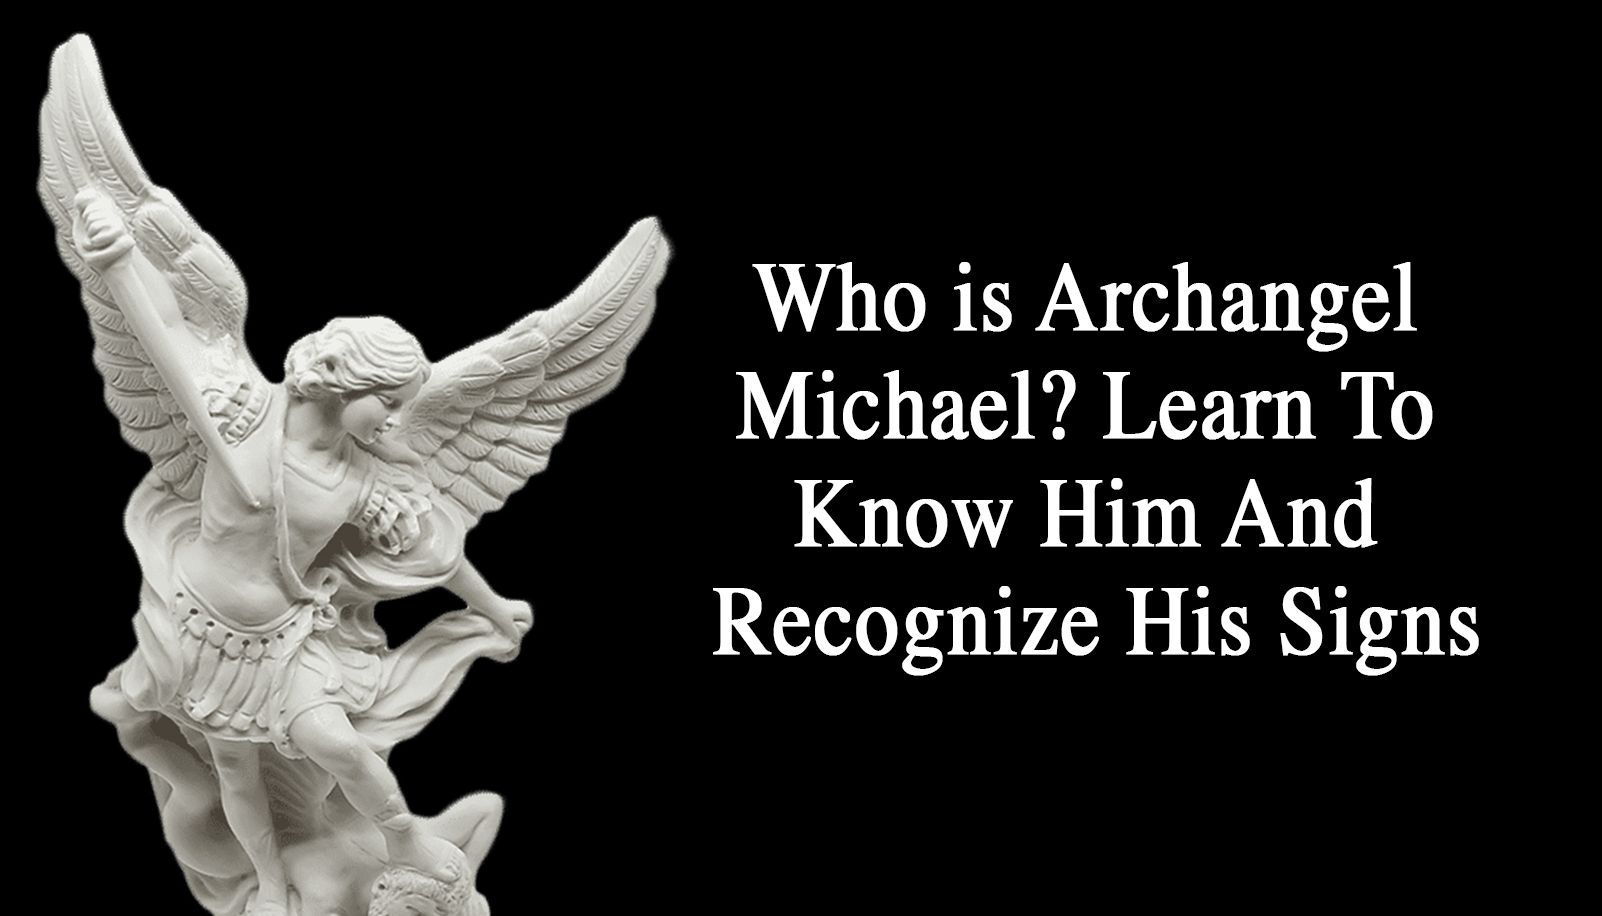 Who-is-Archangel-Michael--Learn-To-Know-Him-And-Recognize-His-Signs-1